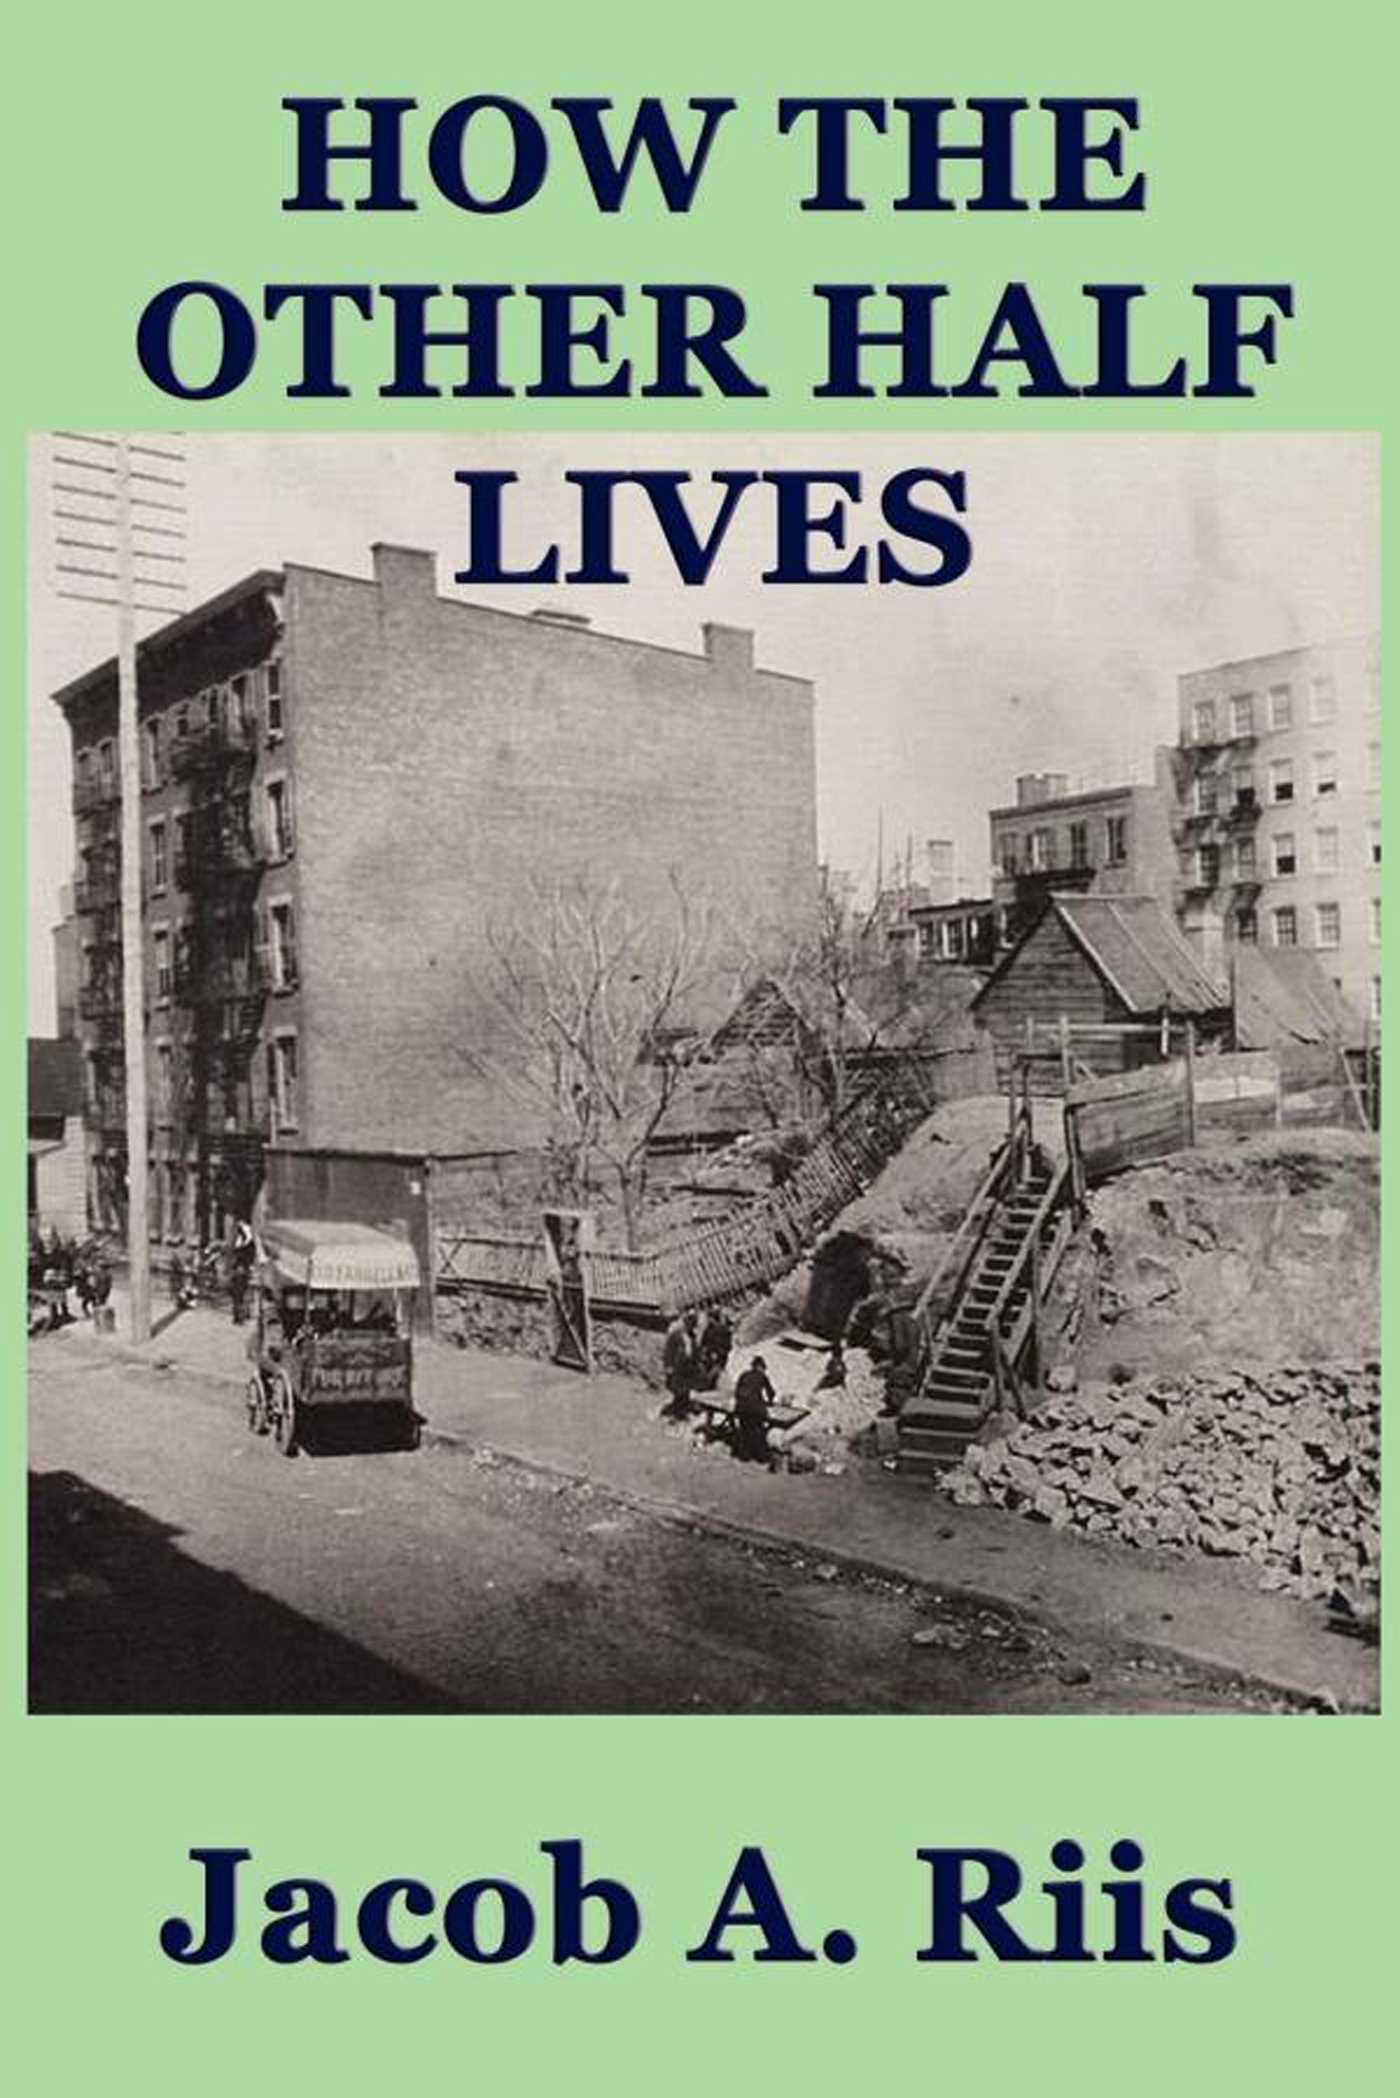 essay on how the other half lives Essay, case study, textbook solution khawaja 1 wali khawaja professor walter keller history 1302 july 20th 2016 how the other half lives the 1890's in united states were quite inh.